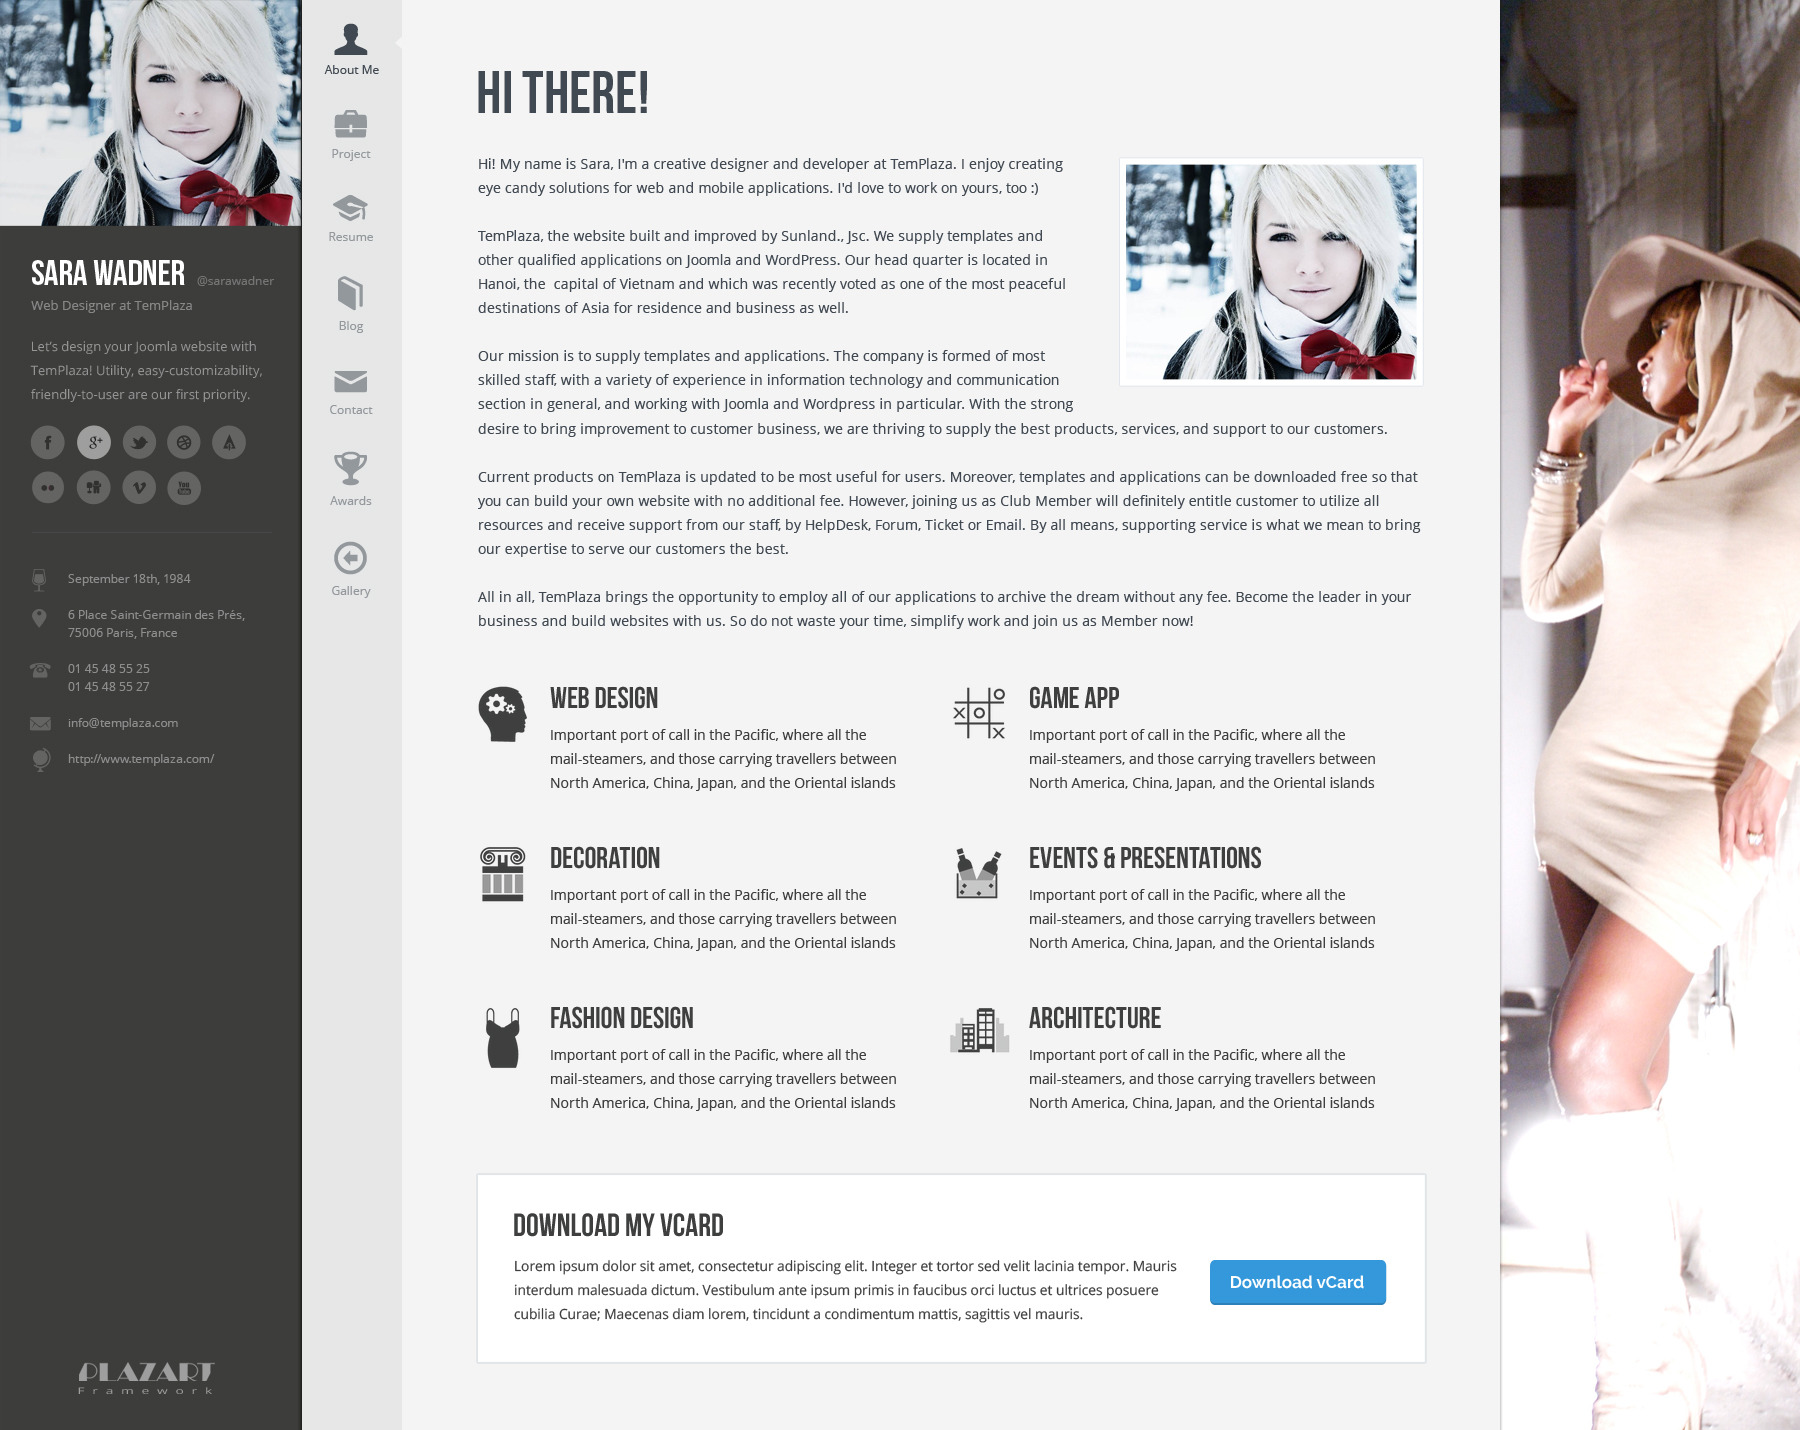 Profiler vcard resume wordpress theme by templaza themeforest profiler vcard resume wordpress theme yelopaper Images